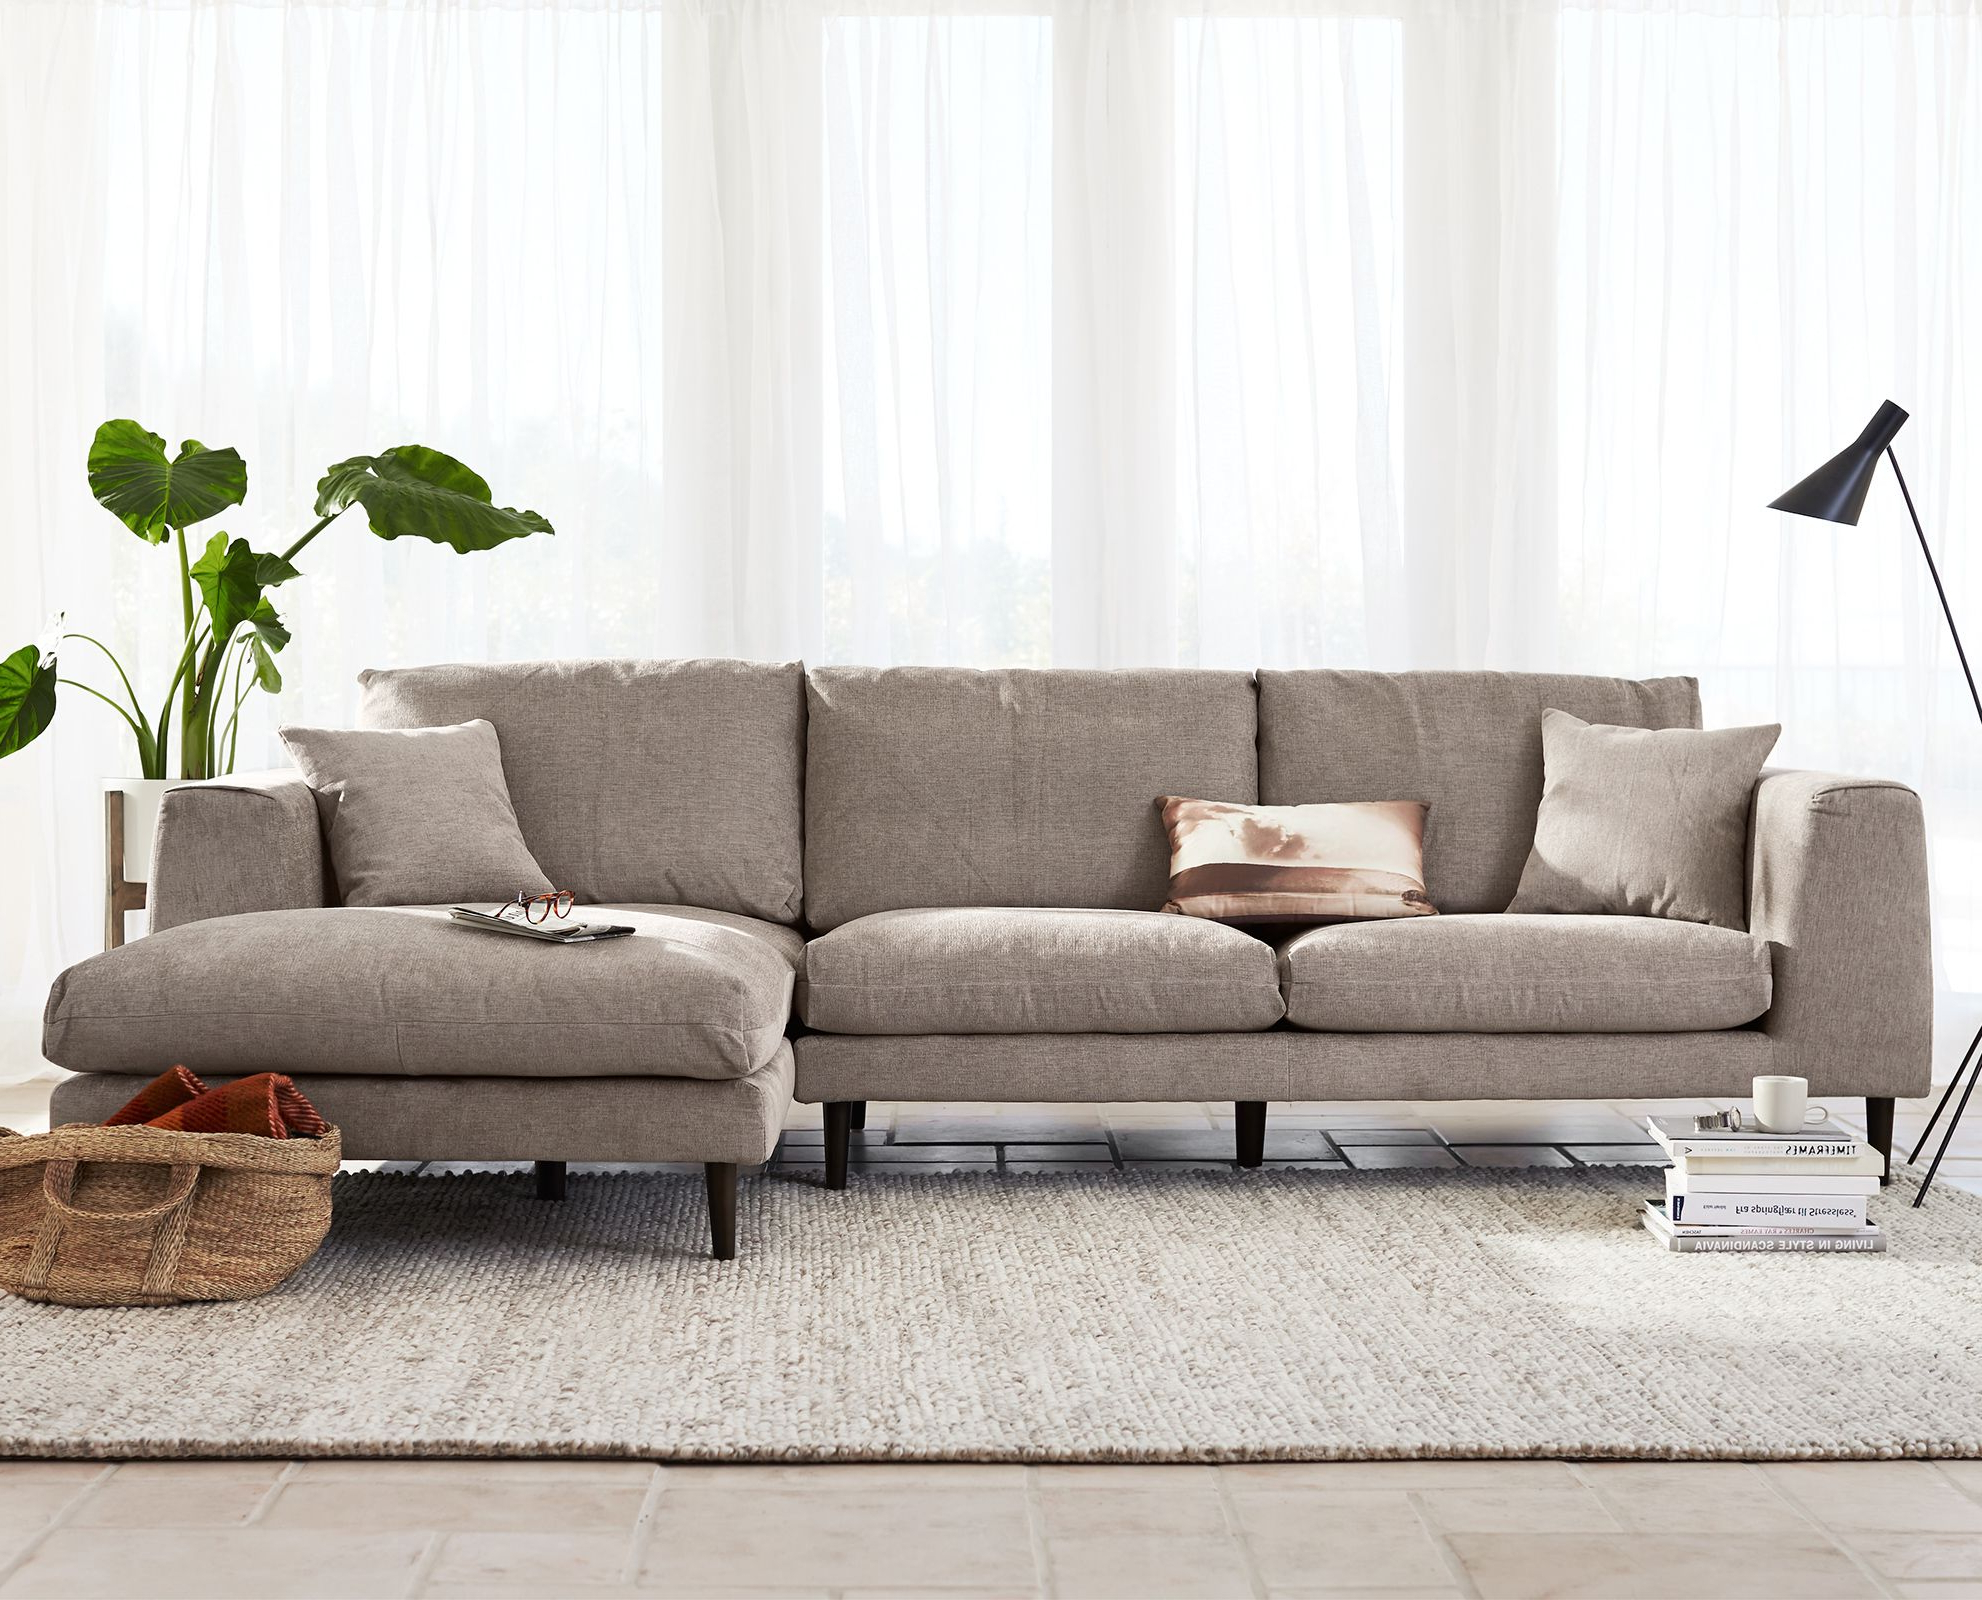 Tenny Cognac 2 Piece Left Facing Chaise Sectionals With 2 Headrest Regarding Best And Newest Jorgen Chaise Sectional From Dania Furniture Co (View 16 of 20)